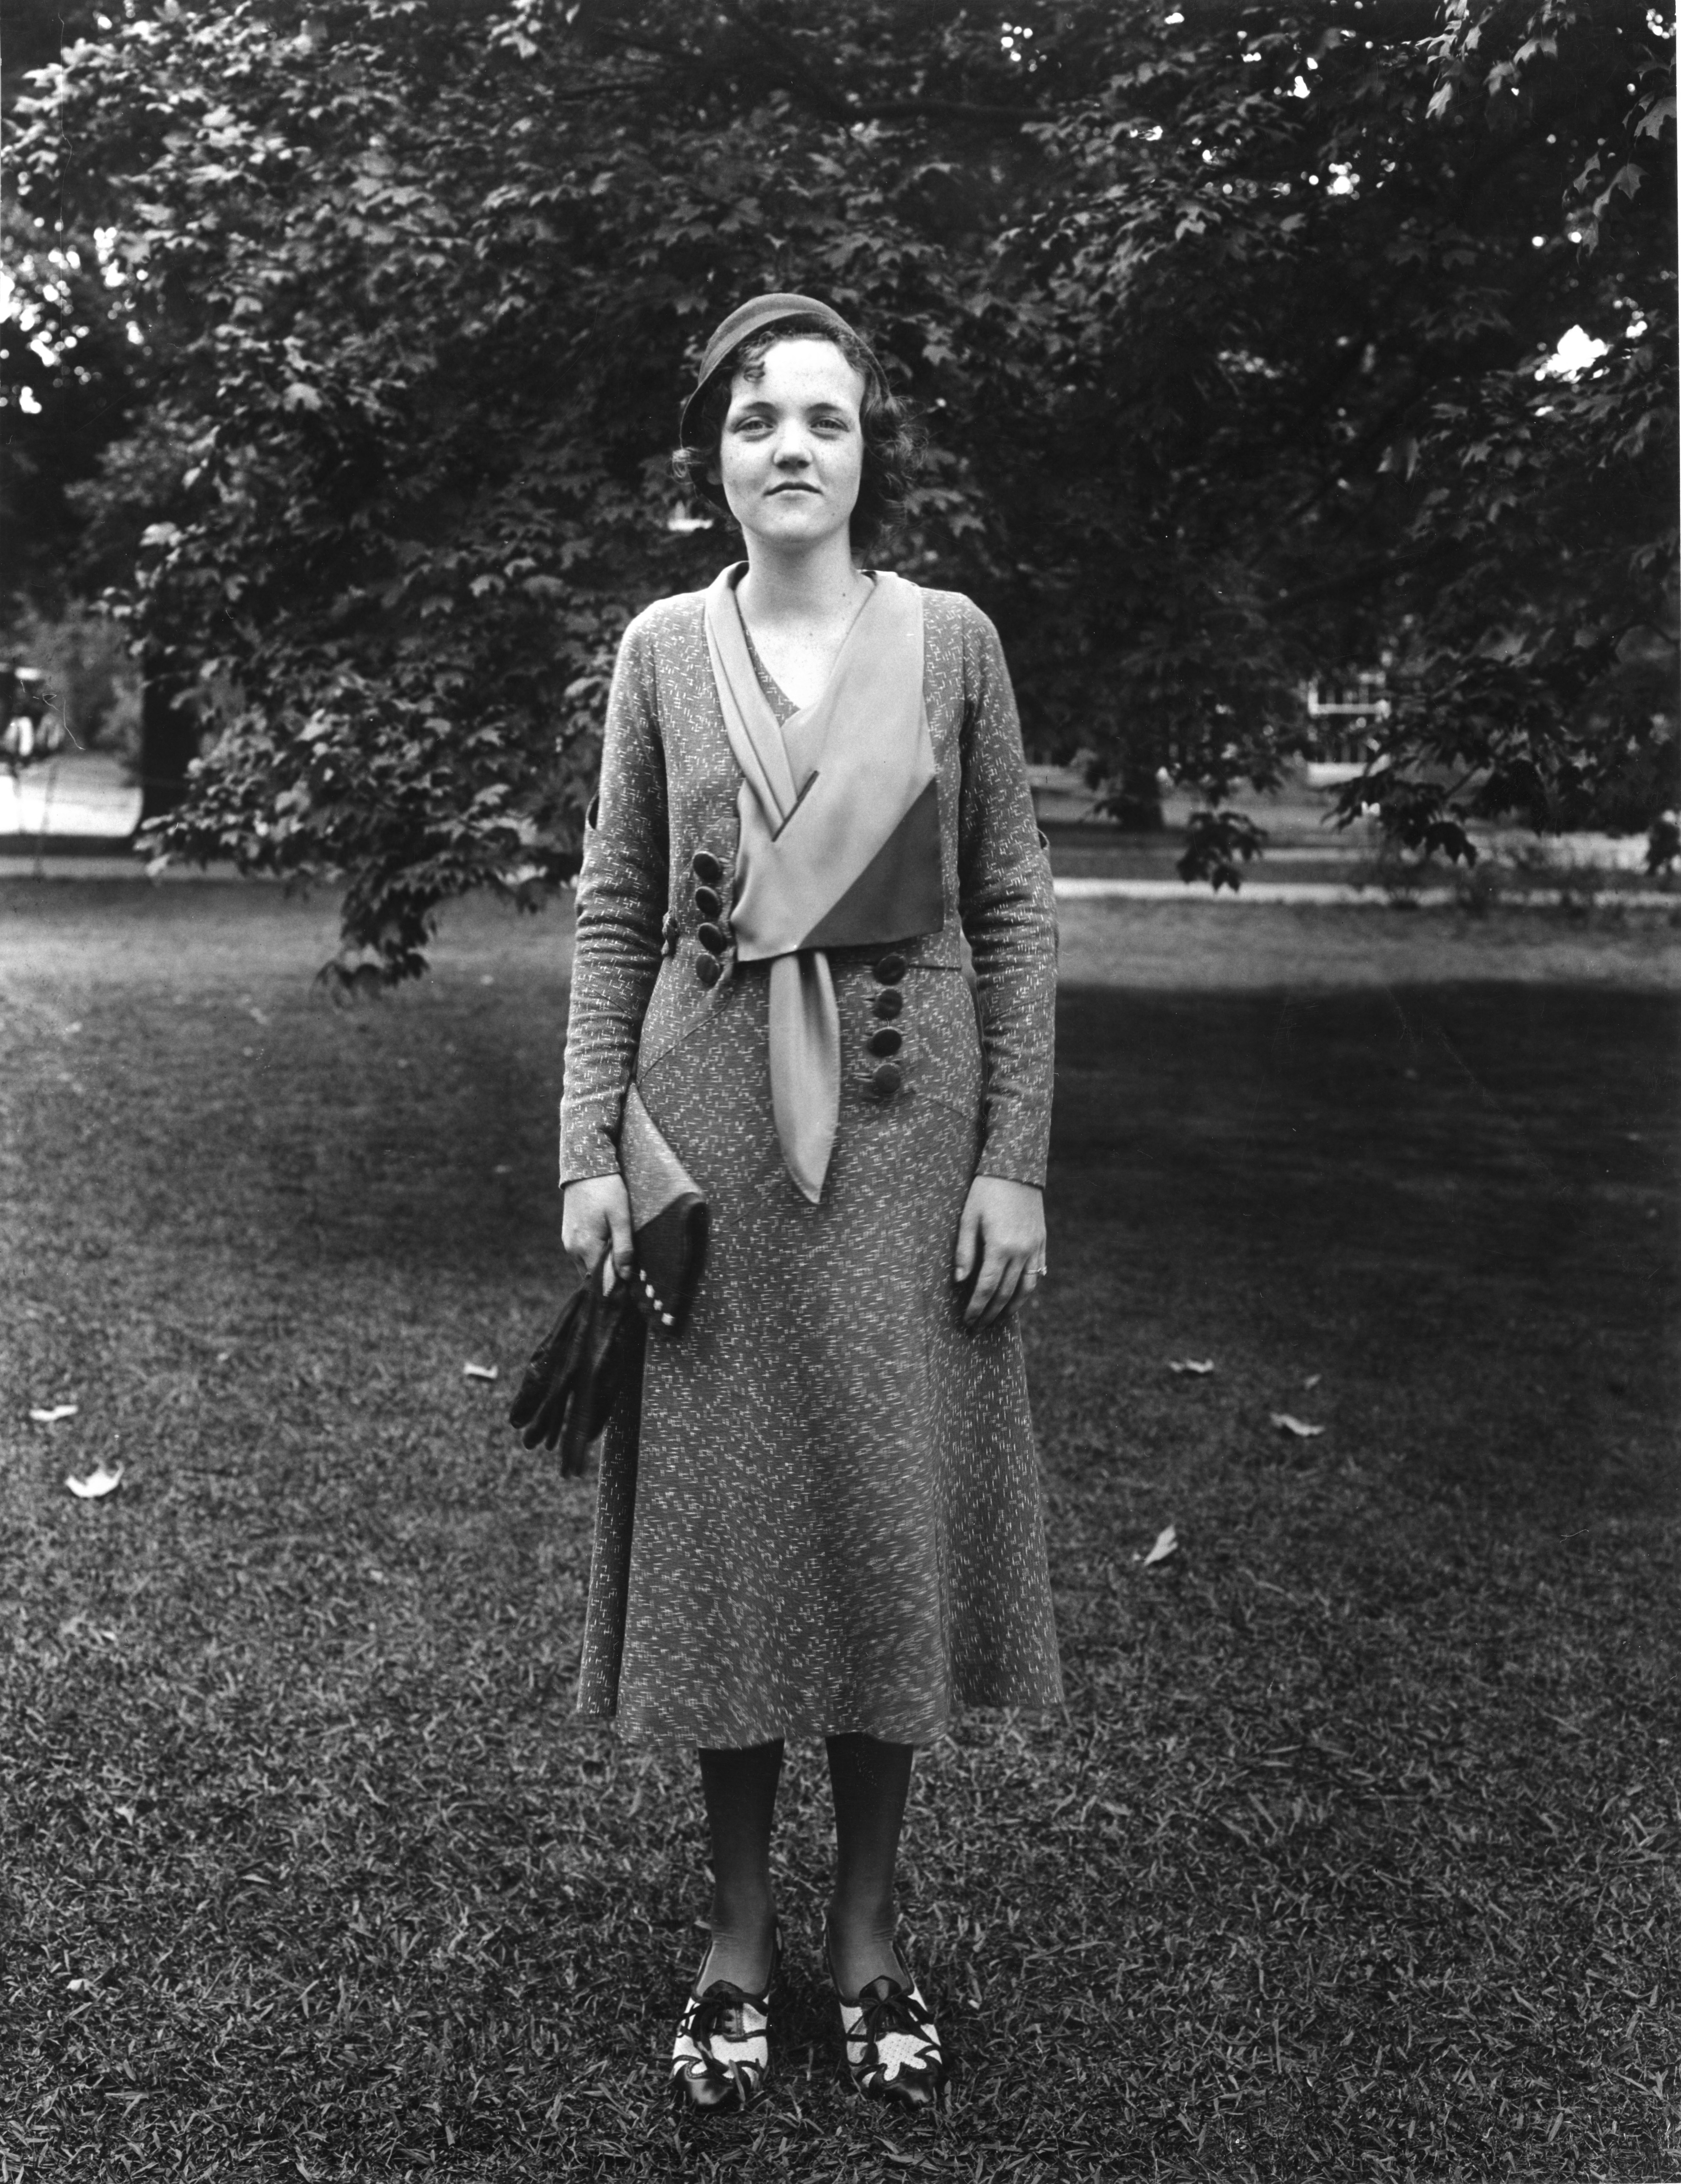 Gladys Vestal (Smith) at North Carolina State 4-H Short Course, 1932